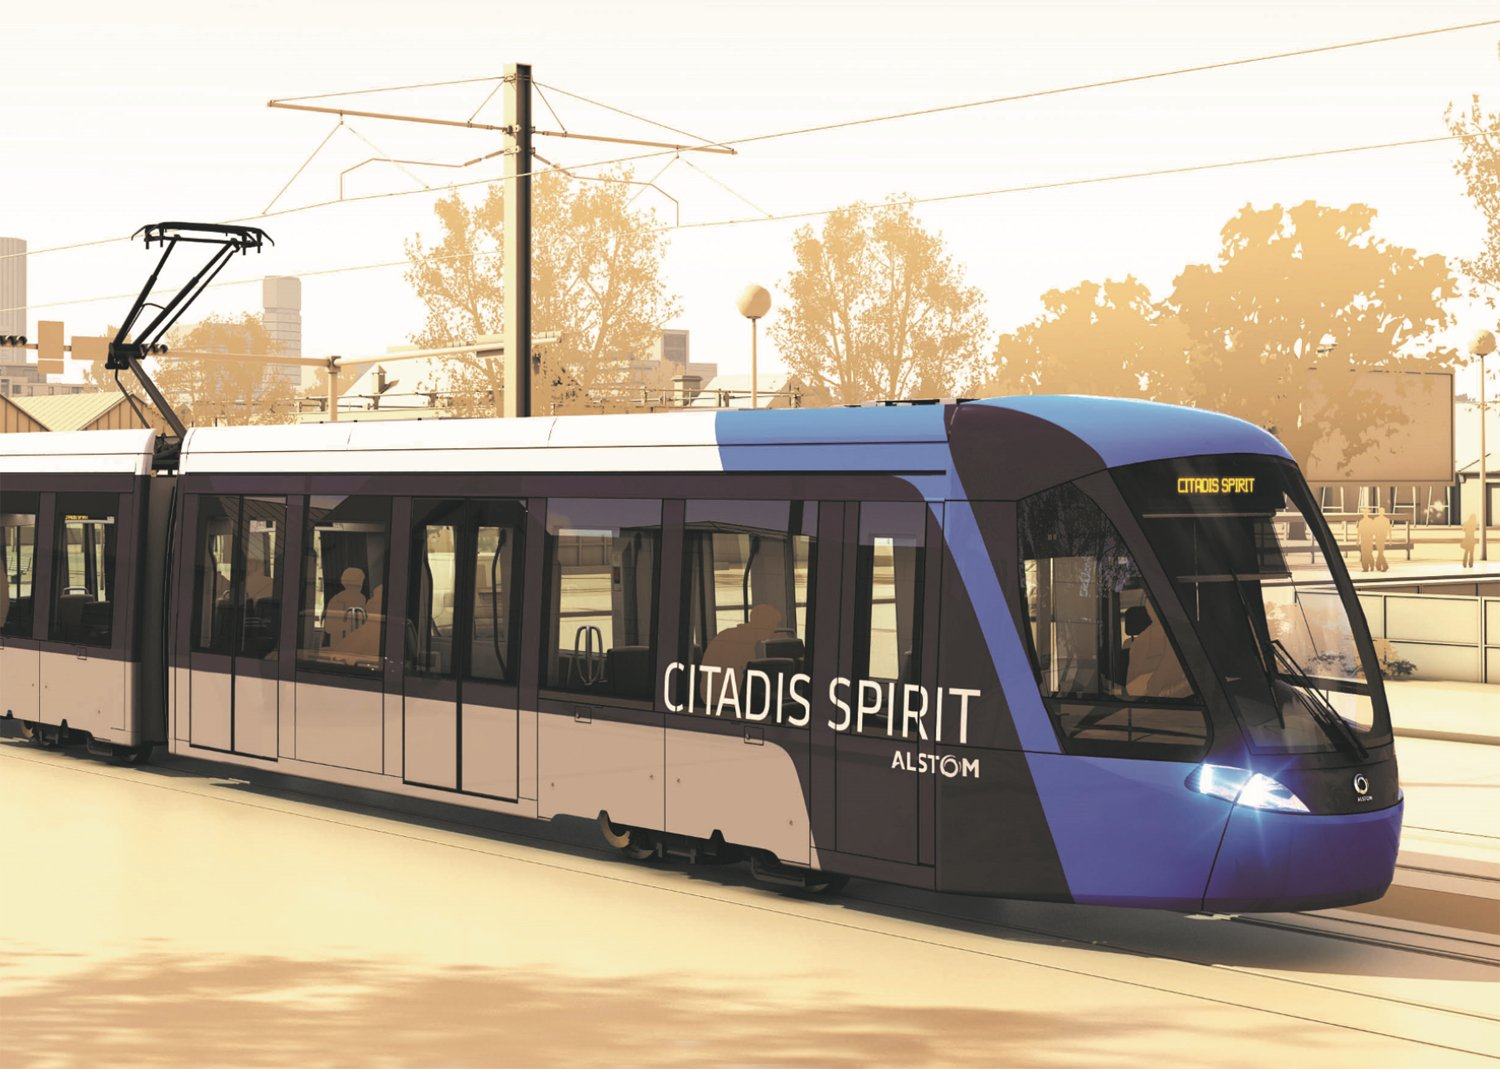 The Alstom Citadis Spirit LRV.